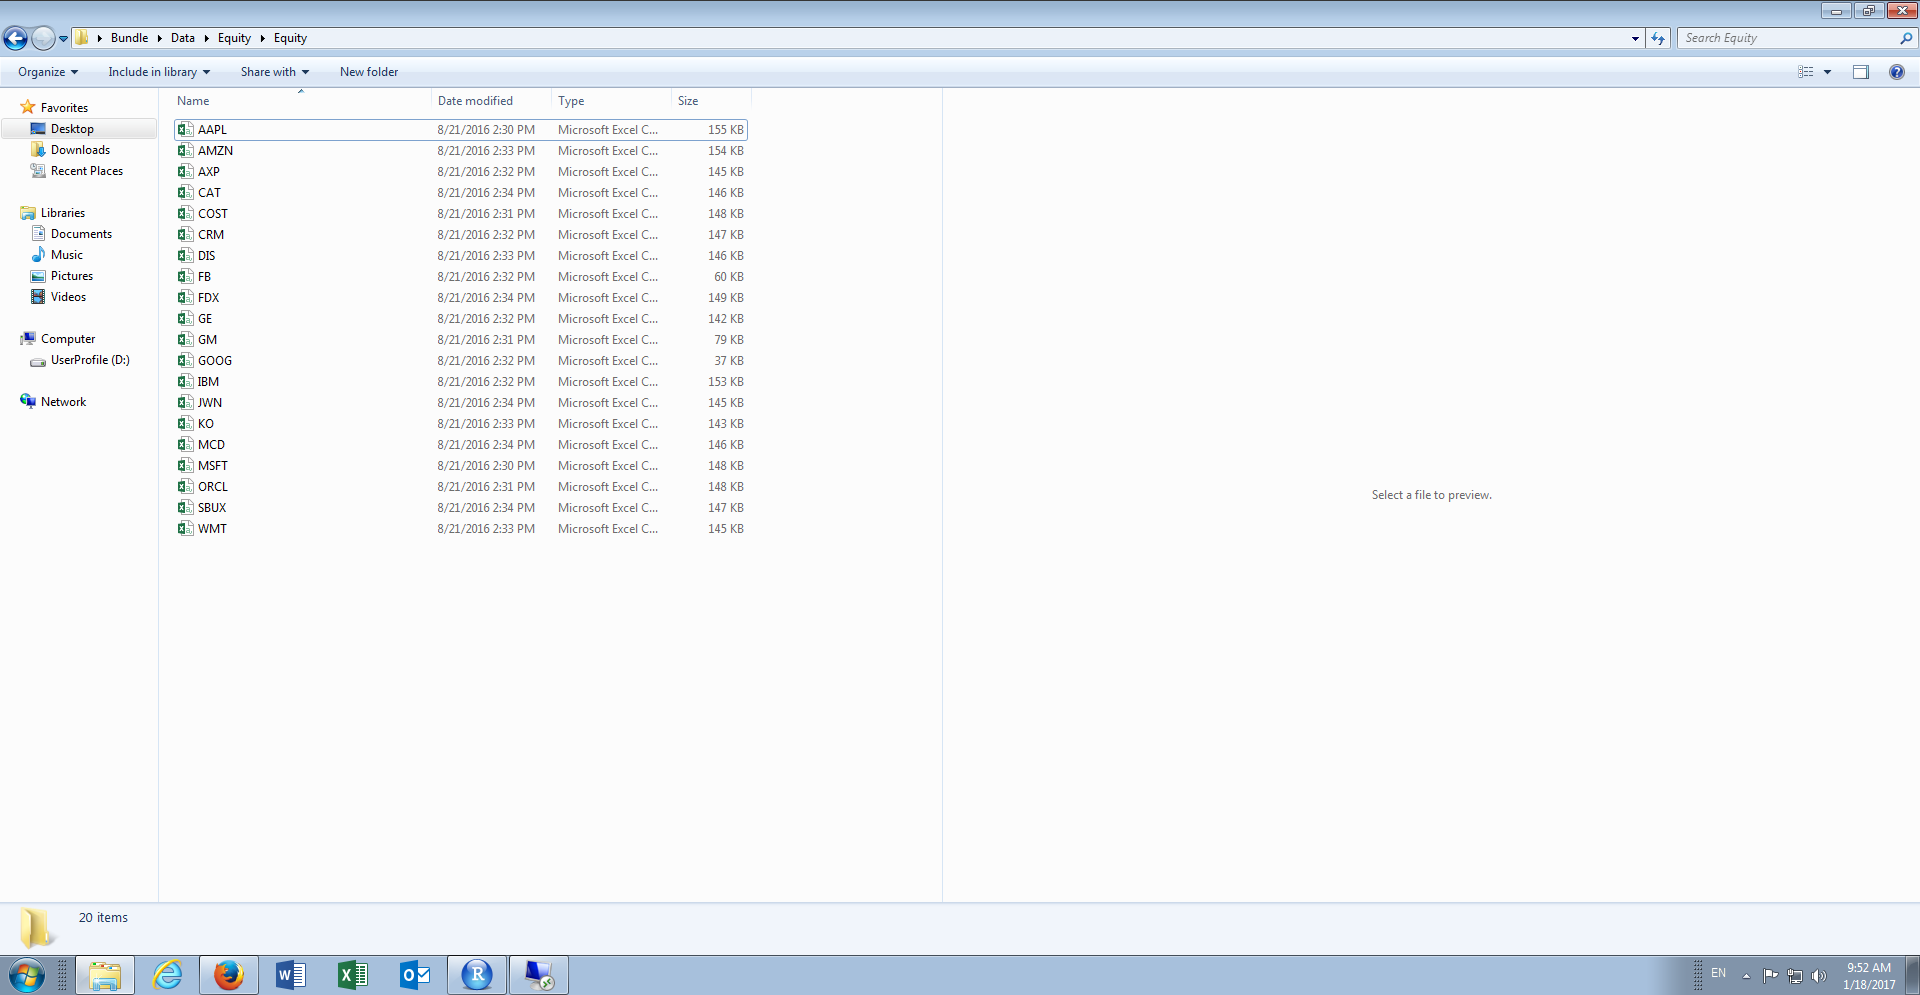 windows-explorer-showing-all-of-the-files-that-can-be-loaded-to-r.png